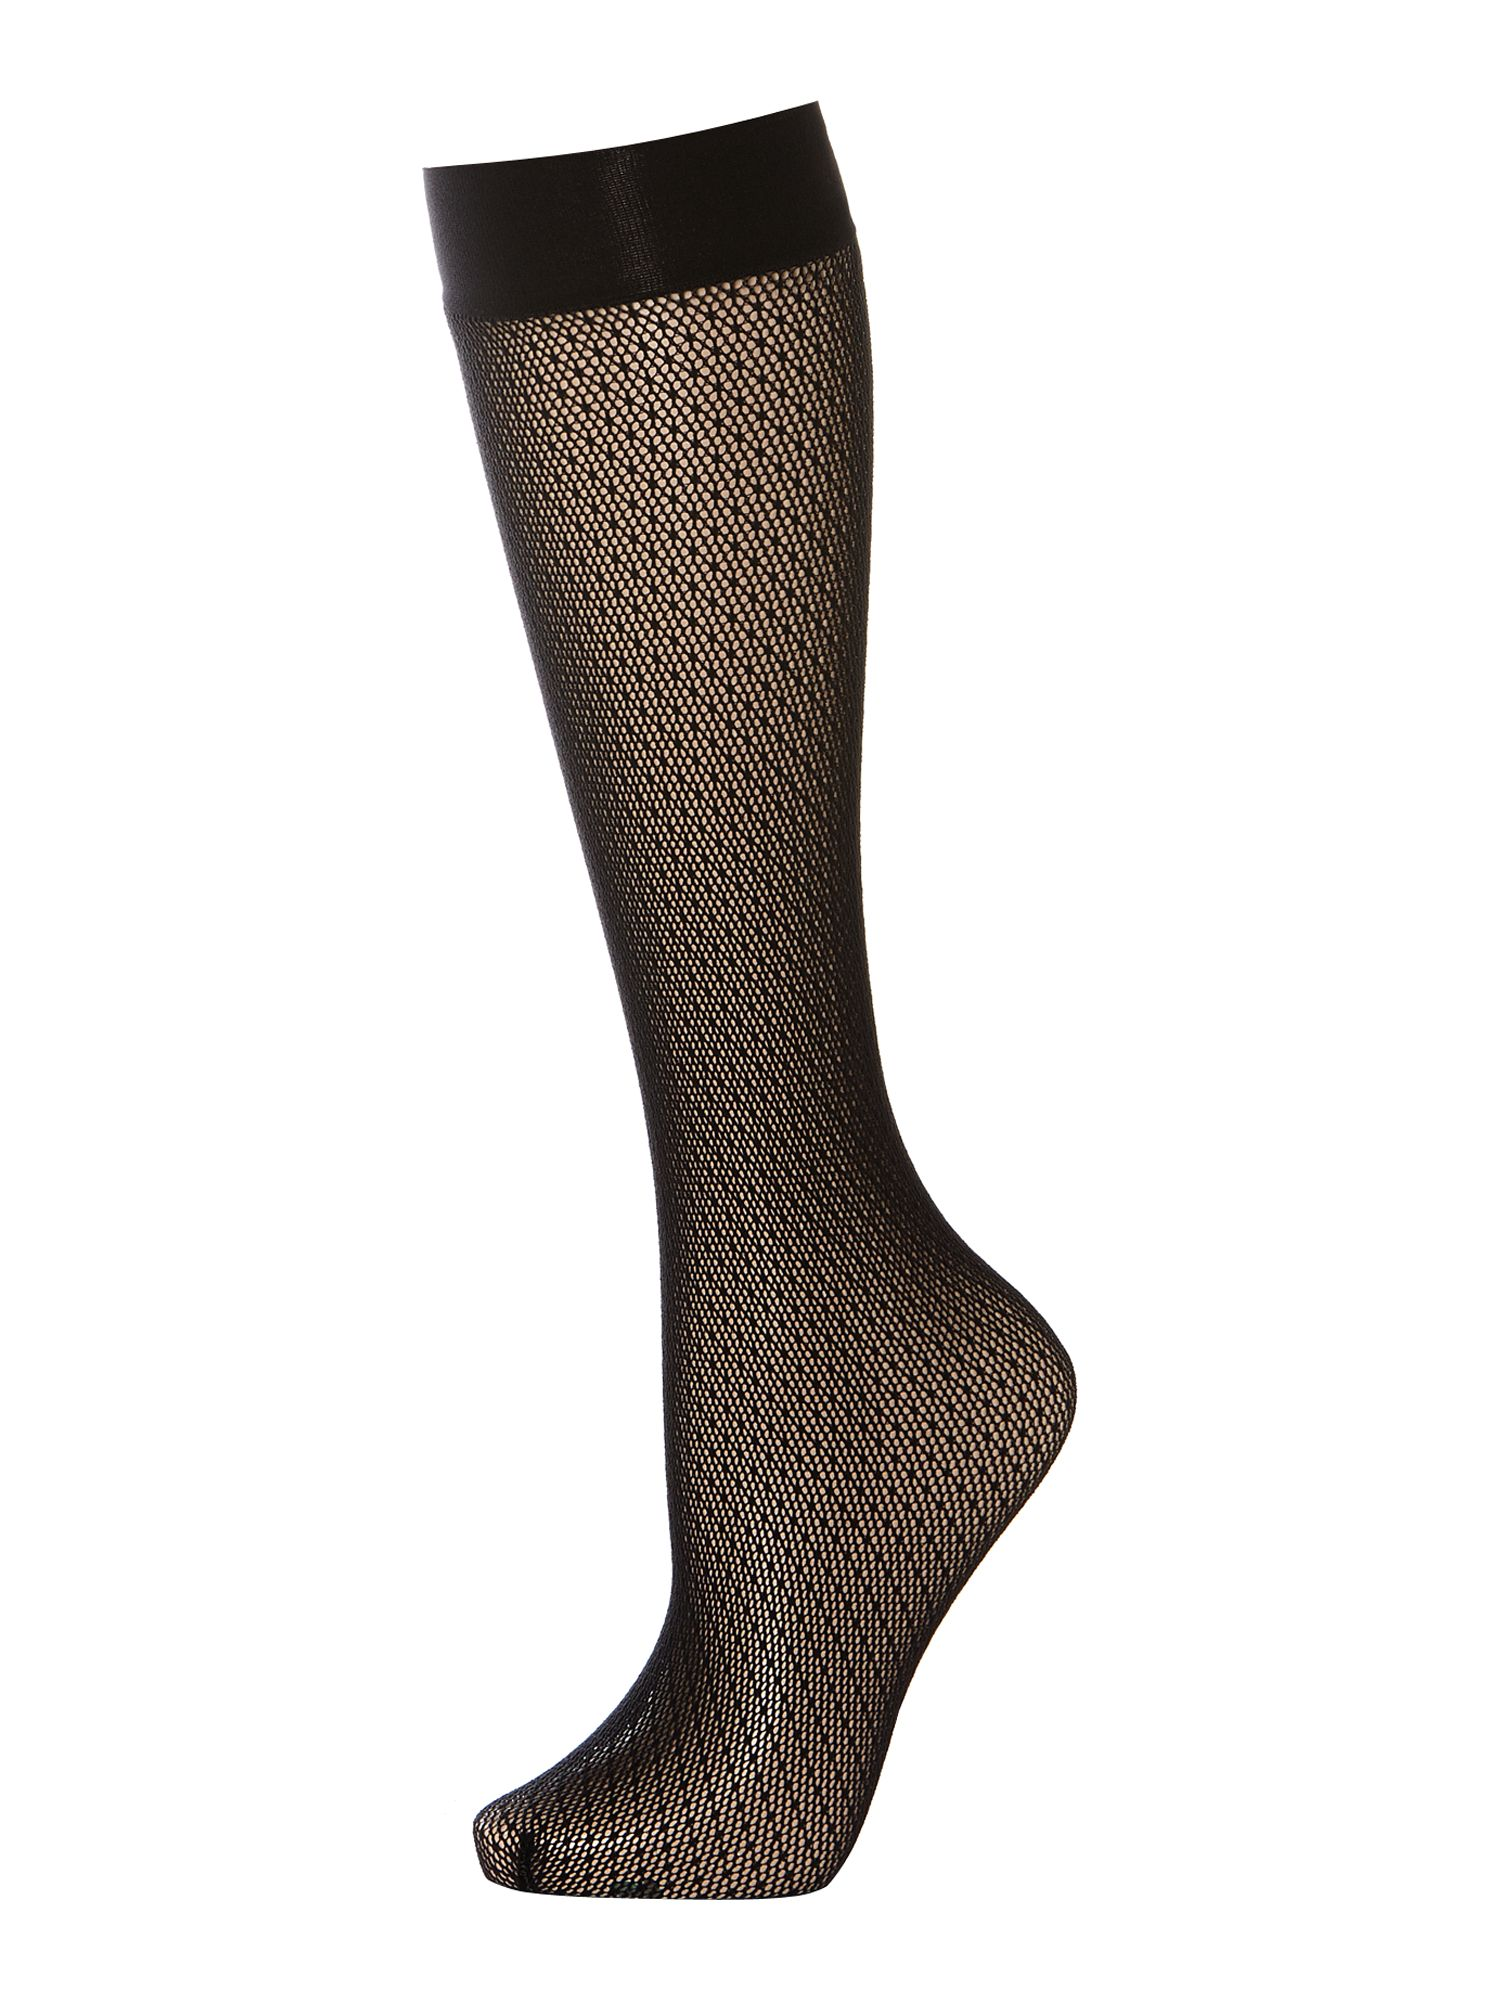 Shamlia Knee Highs